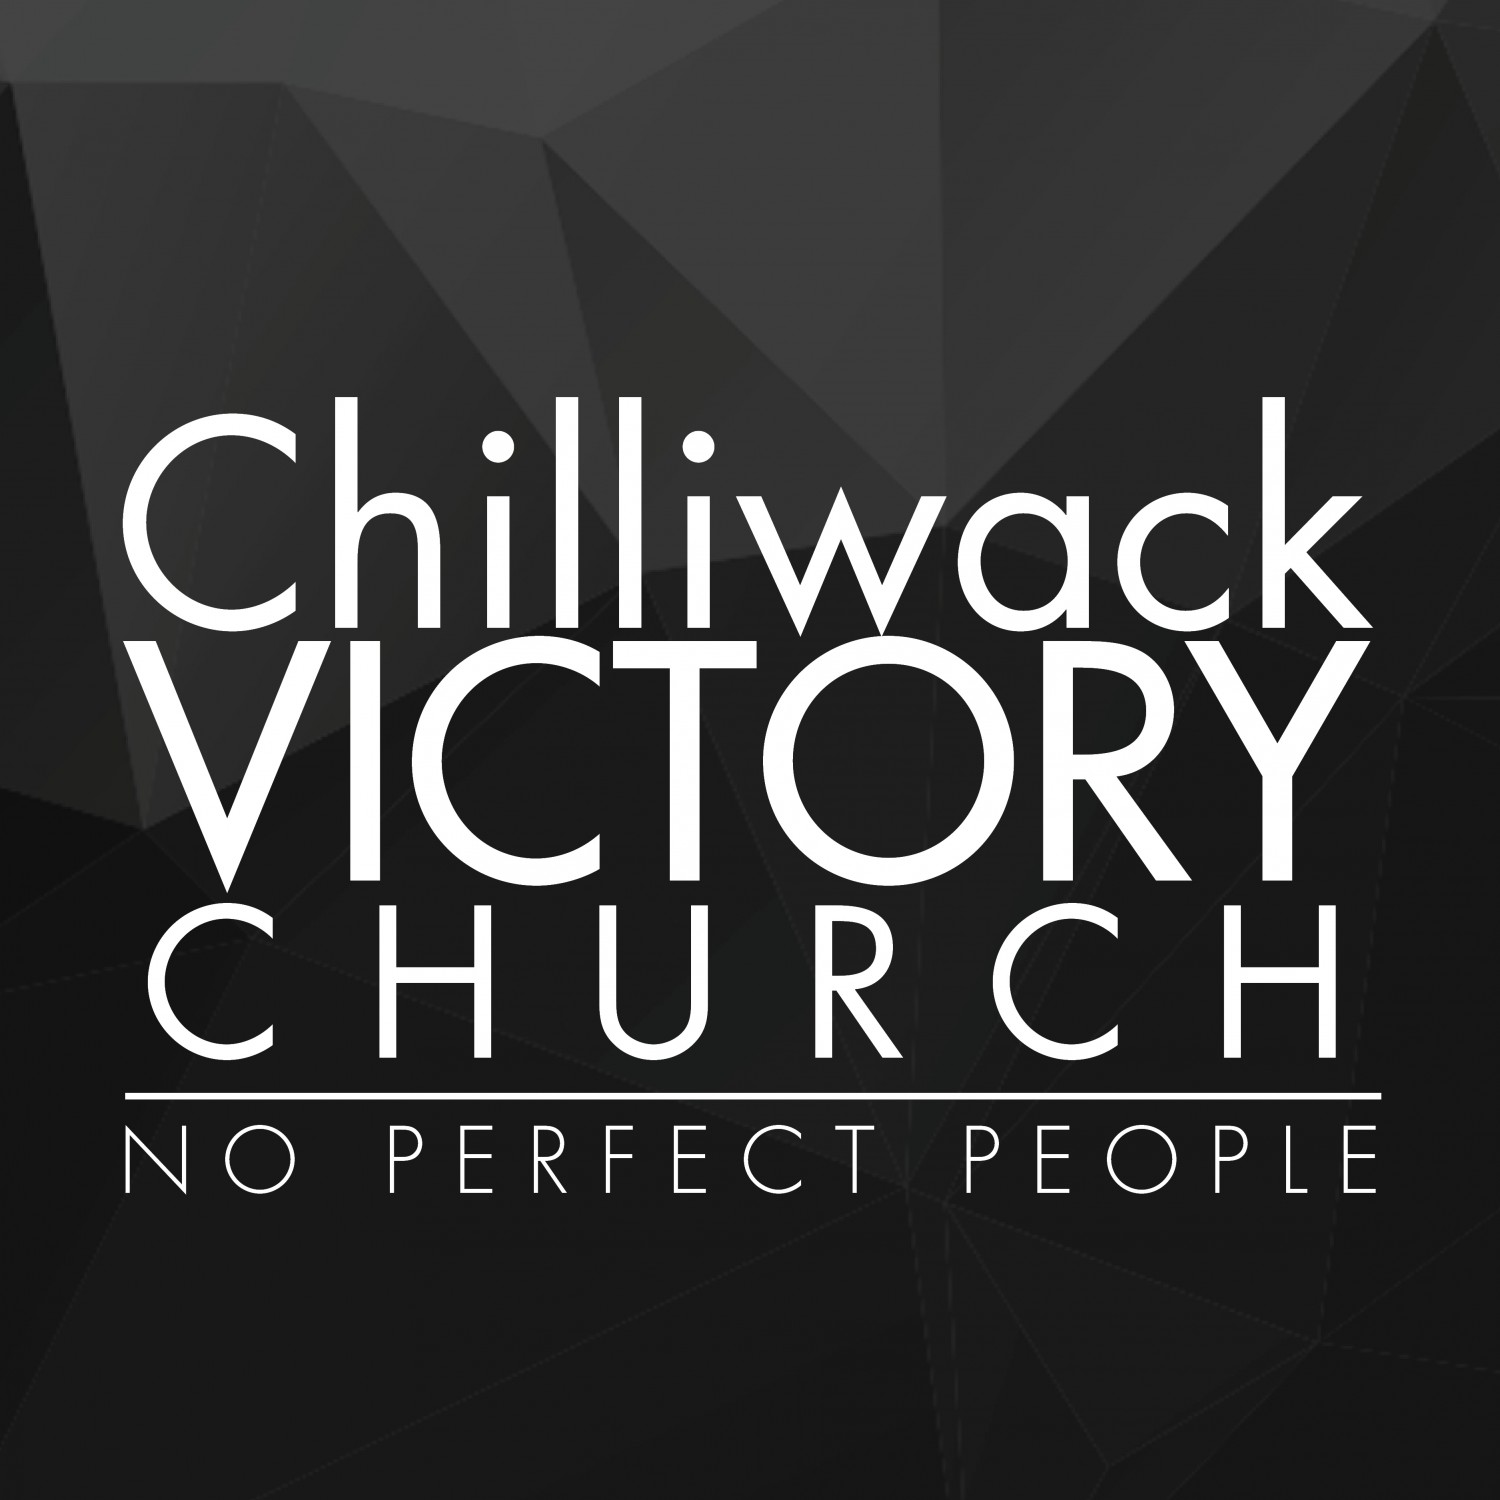 Chilliwack Victory Church - CVC